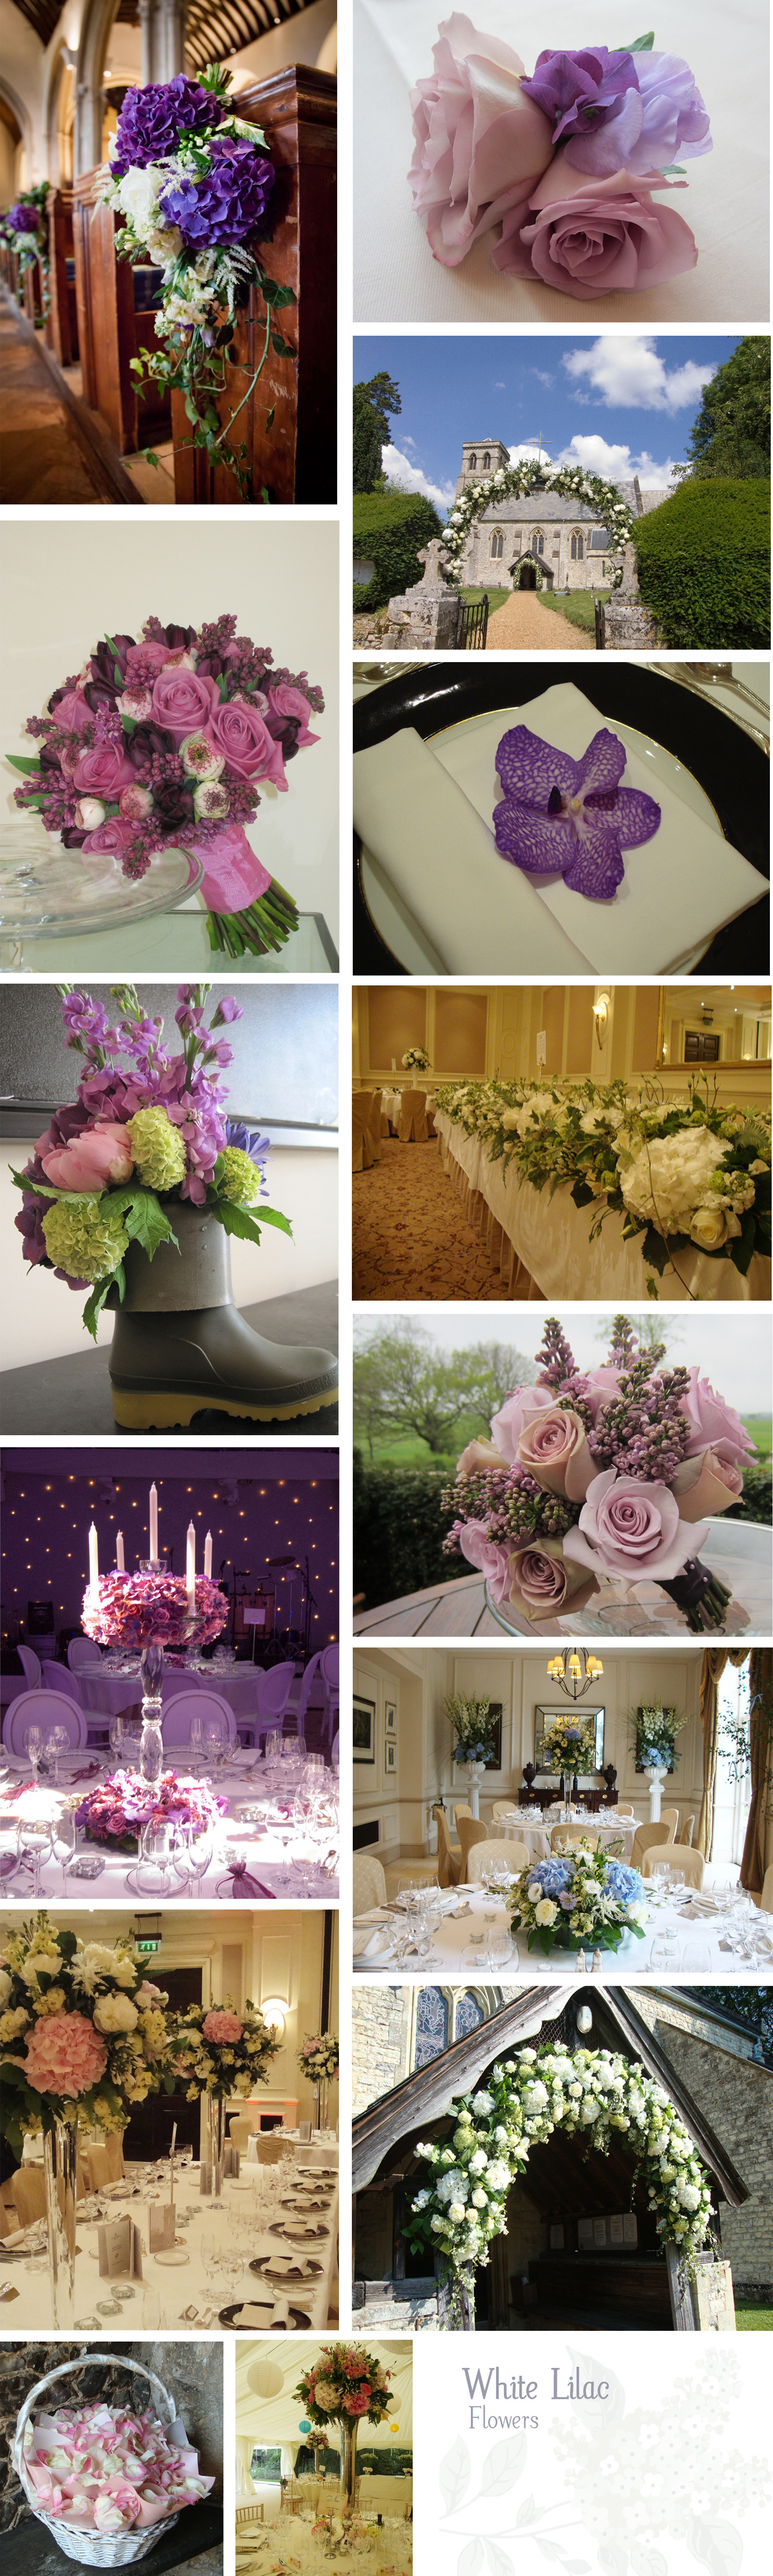 Matthew Oliver Weddings Loves